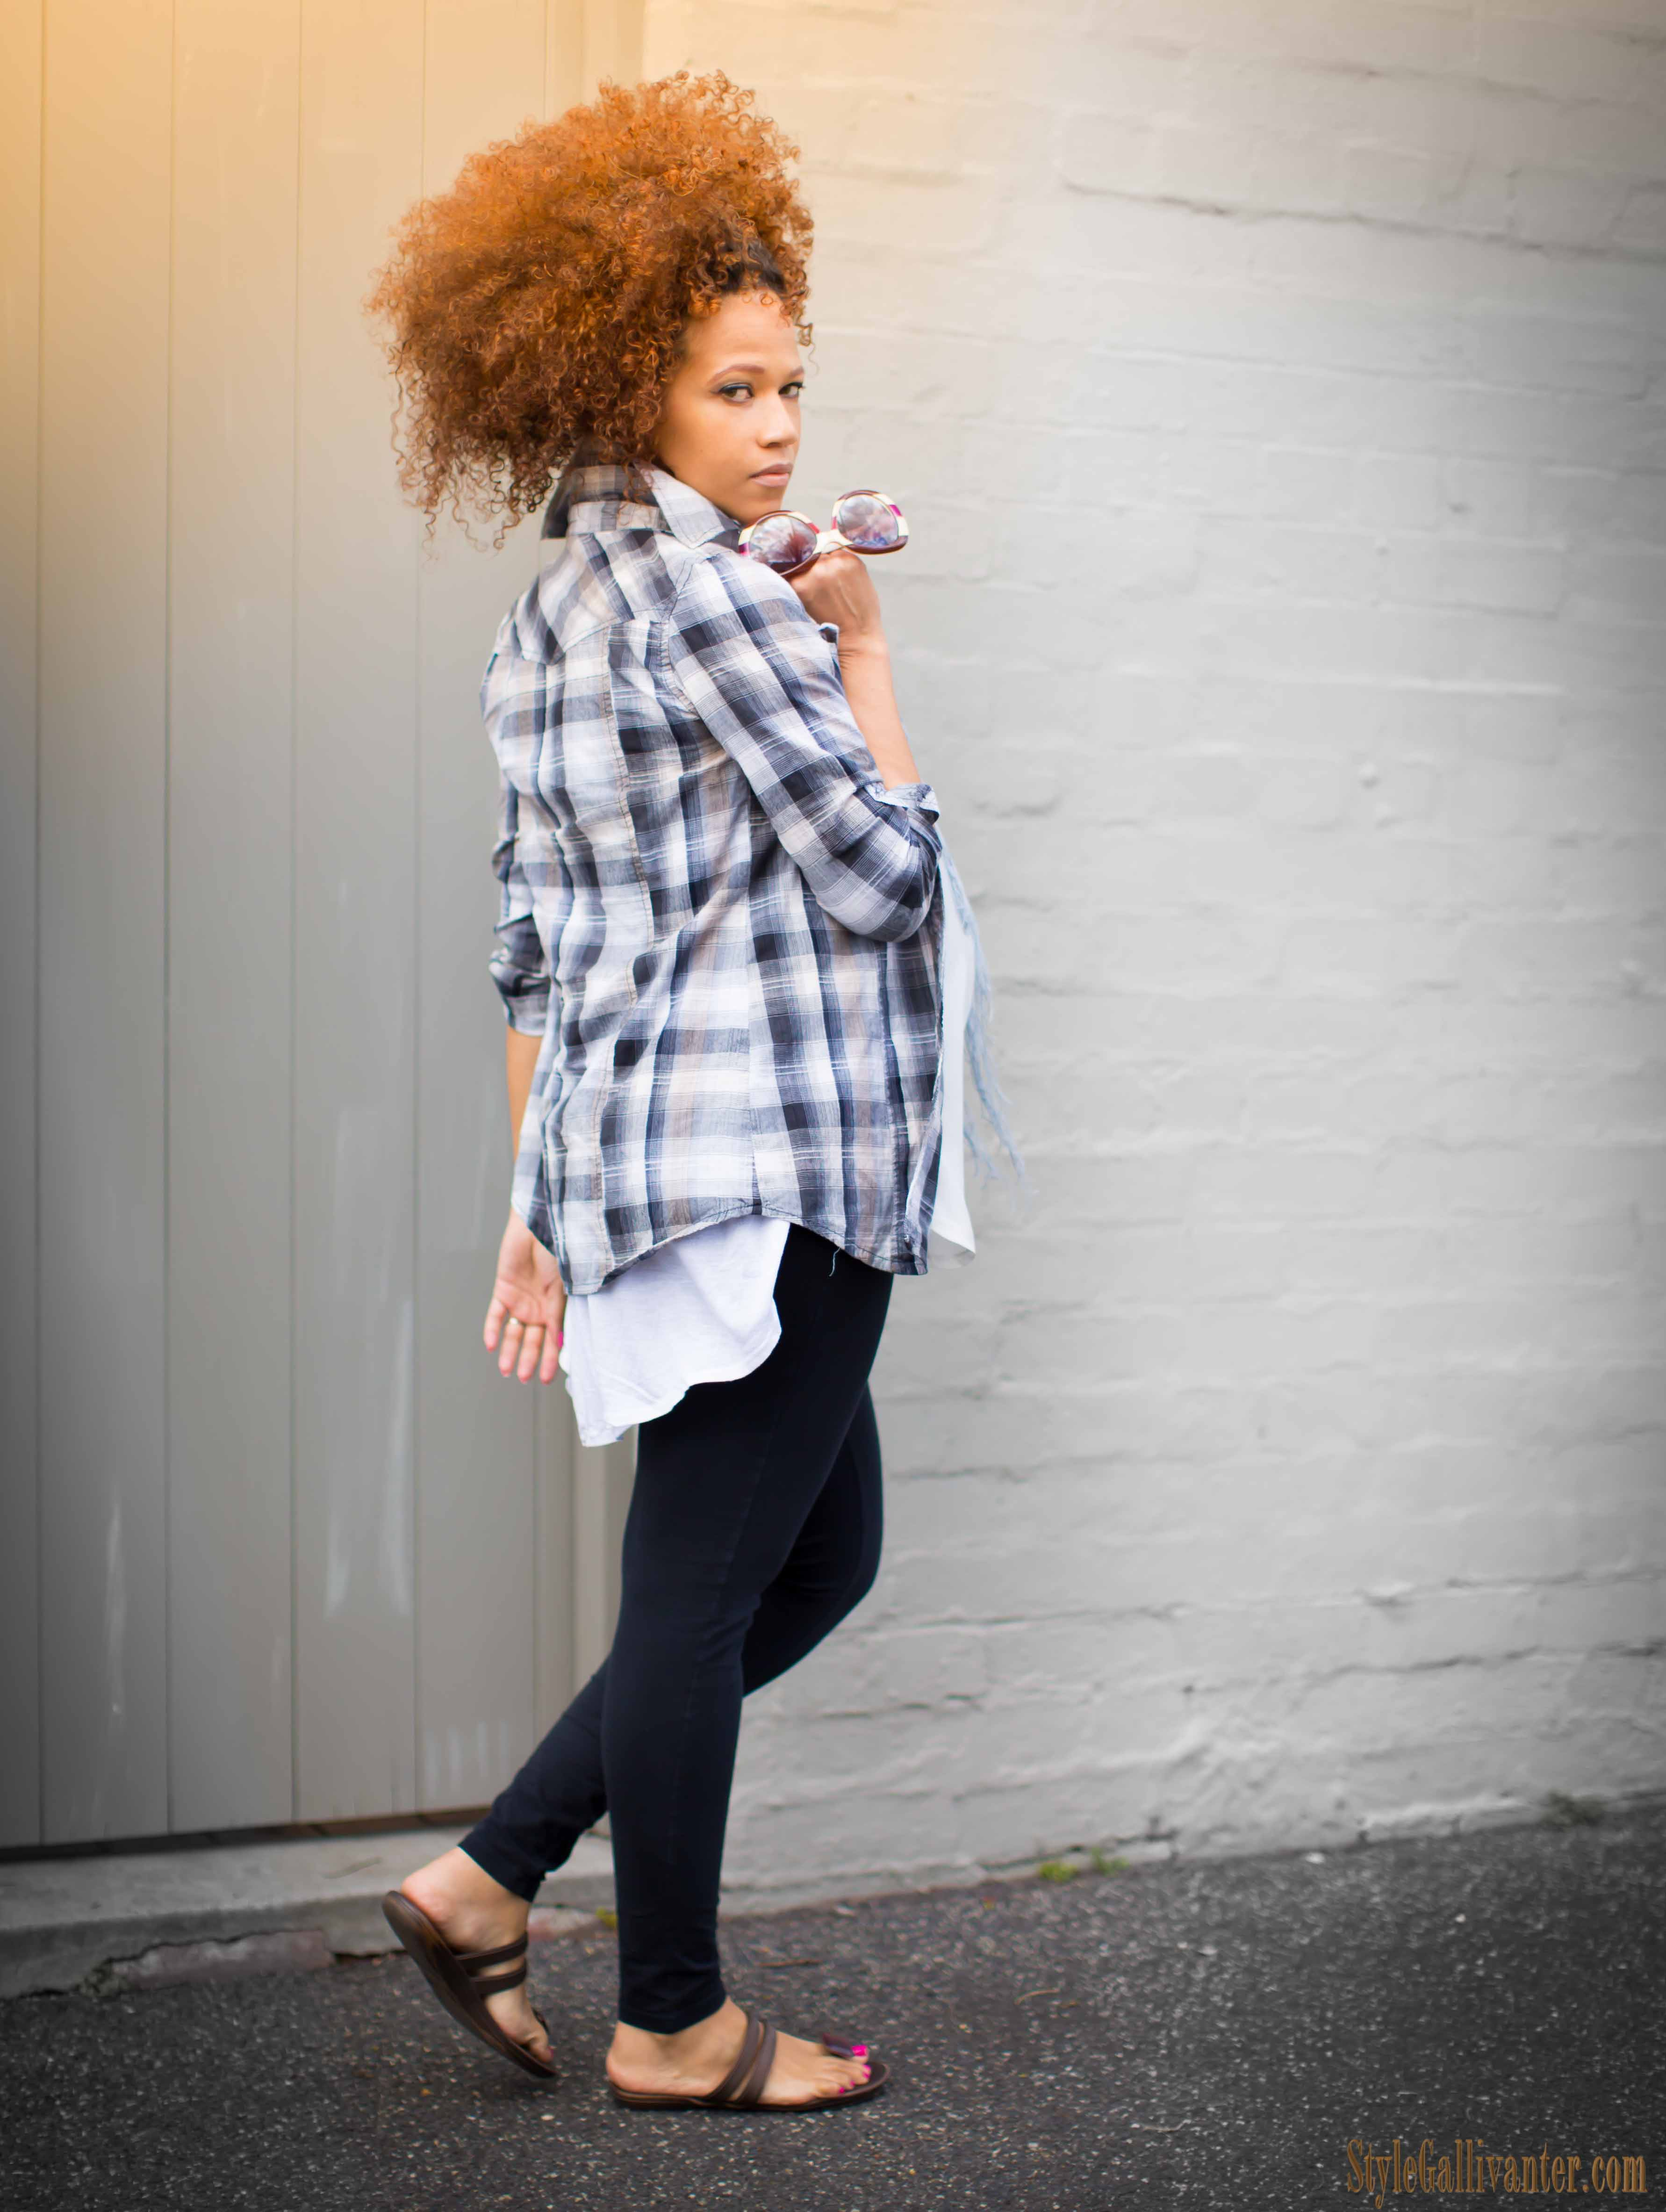 MIRANDA-SAKHINO-2015_STYLEGALLIVANTER.COM_STYLEGALLAVANTER_AFRICAN-FASHION-BLOGGERS_mommy-bloggers-australia_top-mum-blogs-melbourne_stylish-mum-bloggers-australia-2